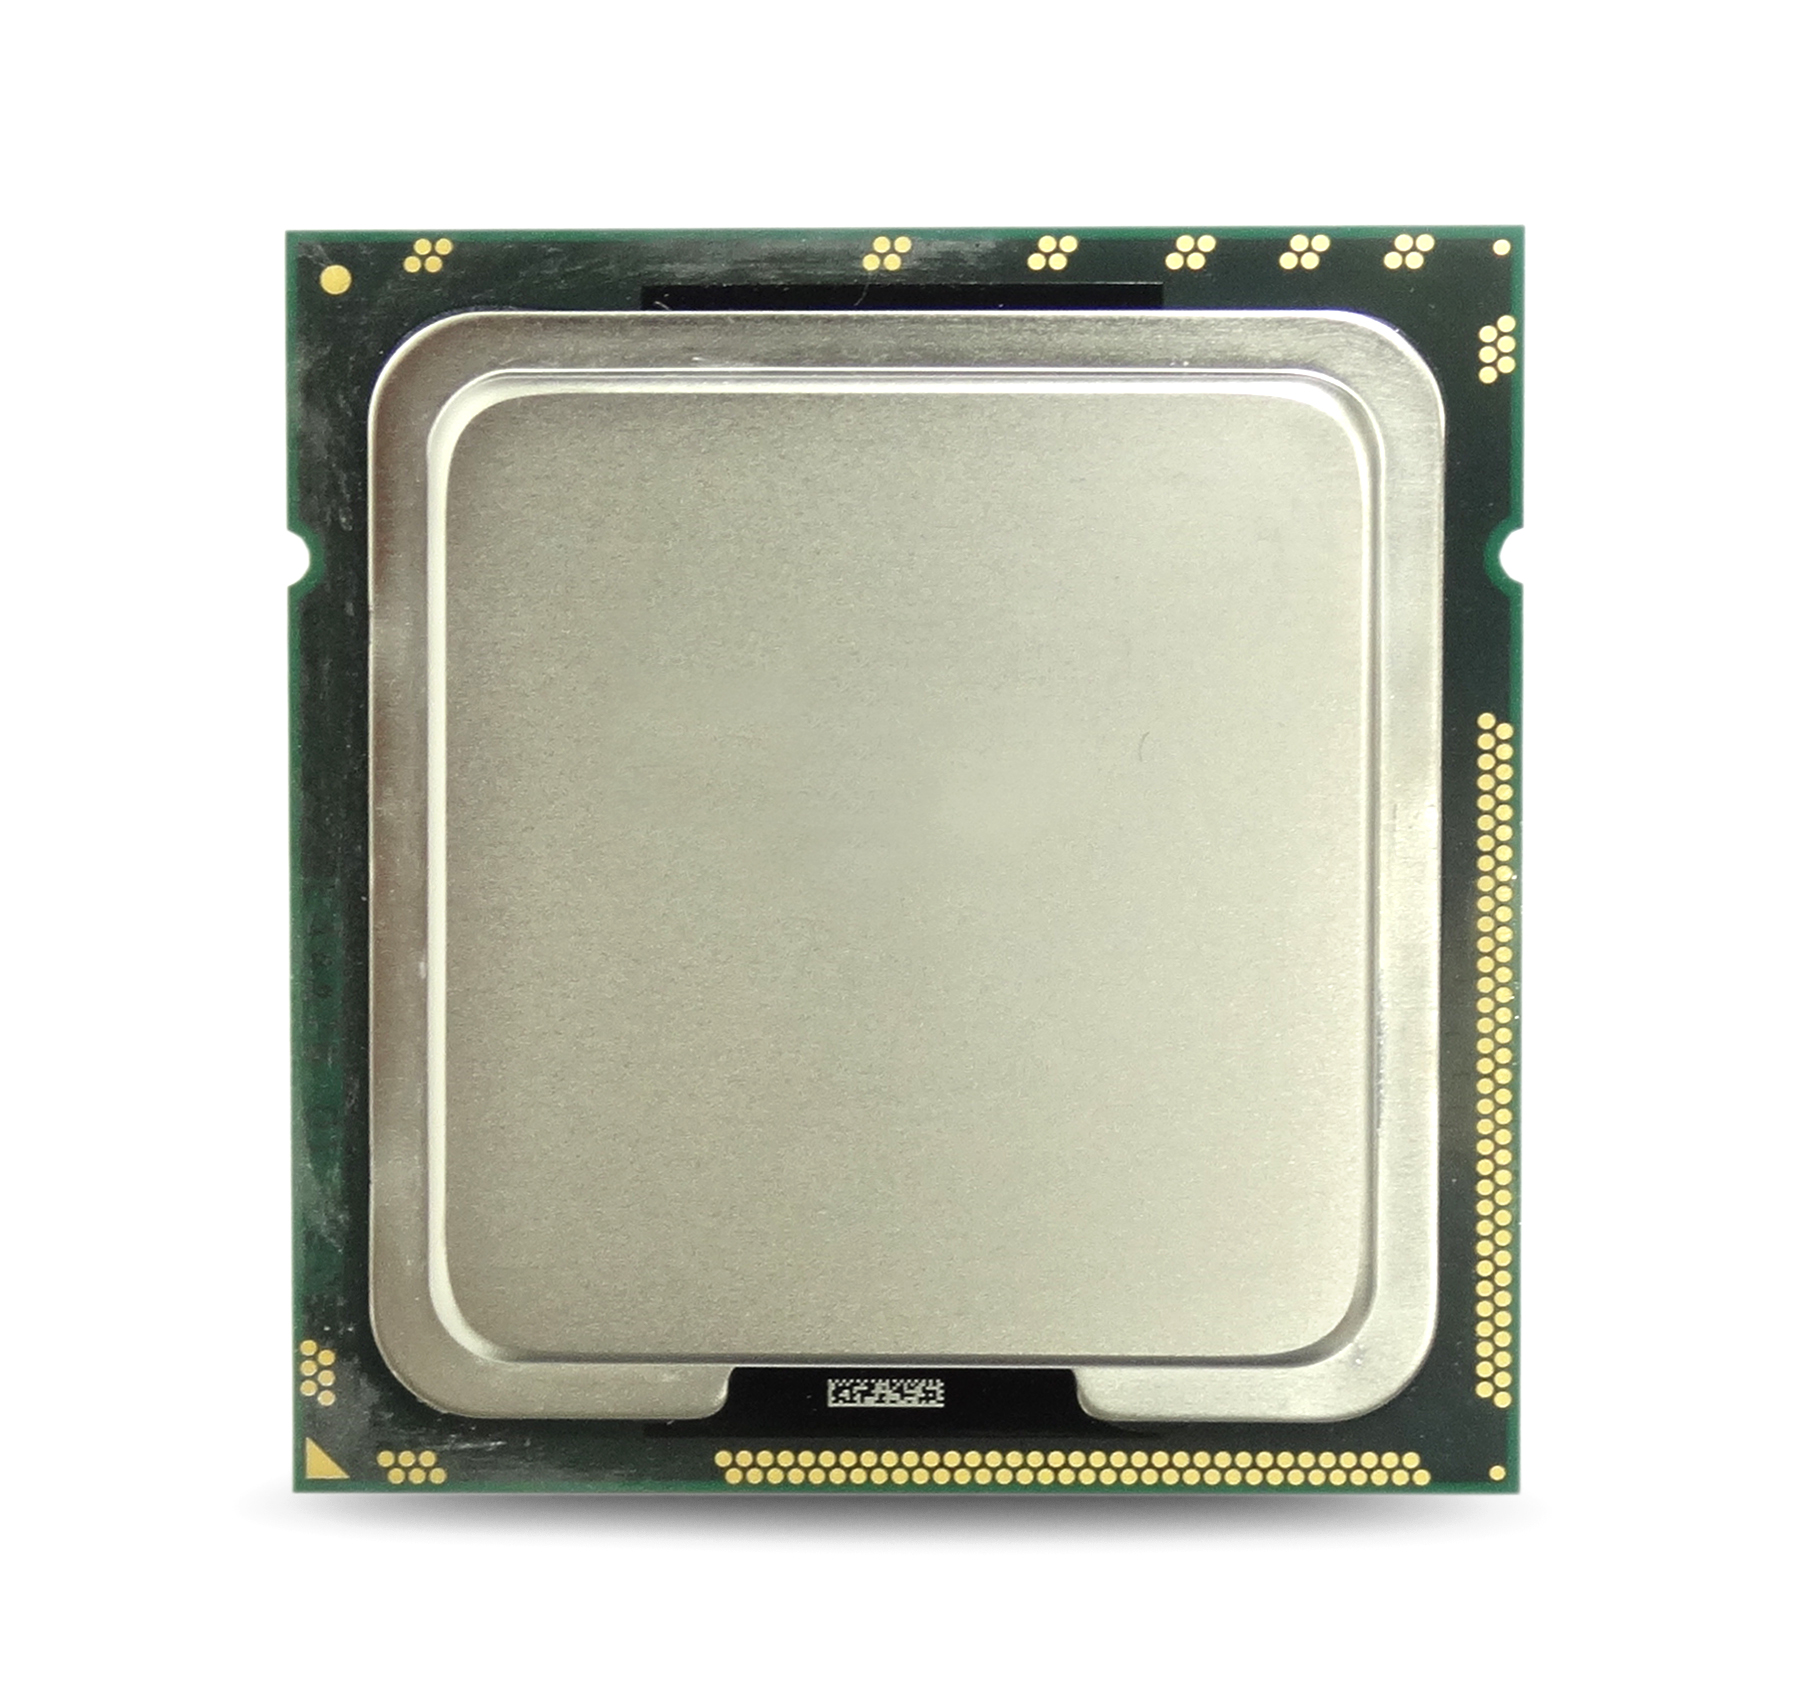 INTEL XEON E3-1220 3.1GHZ QUAD CORE 8MB CACHE LGA 1155 PROCESSOR (SR00F)